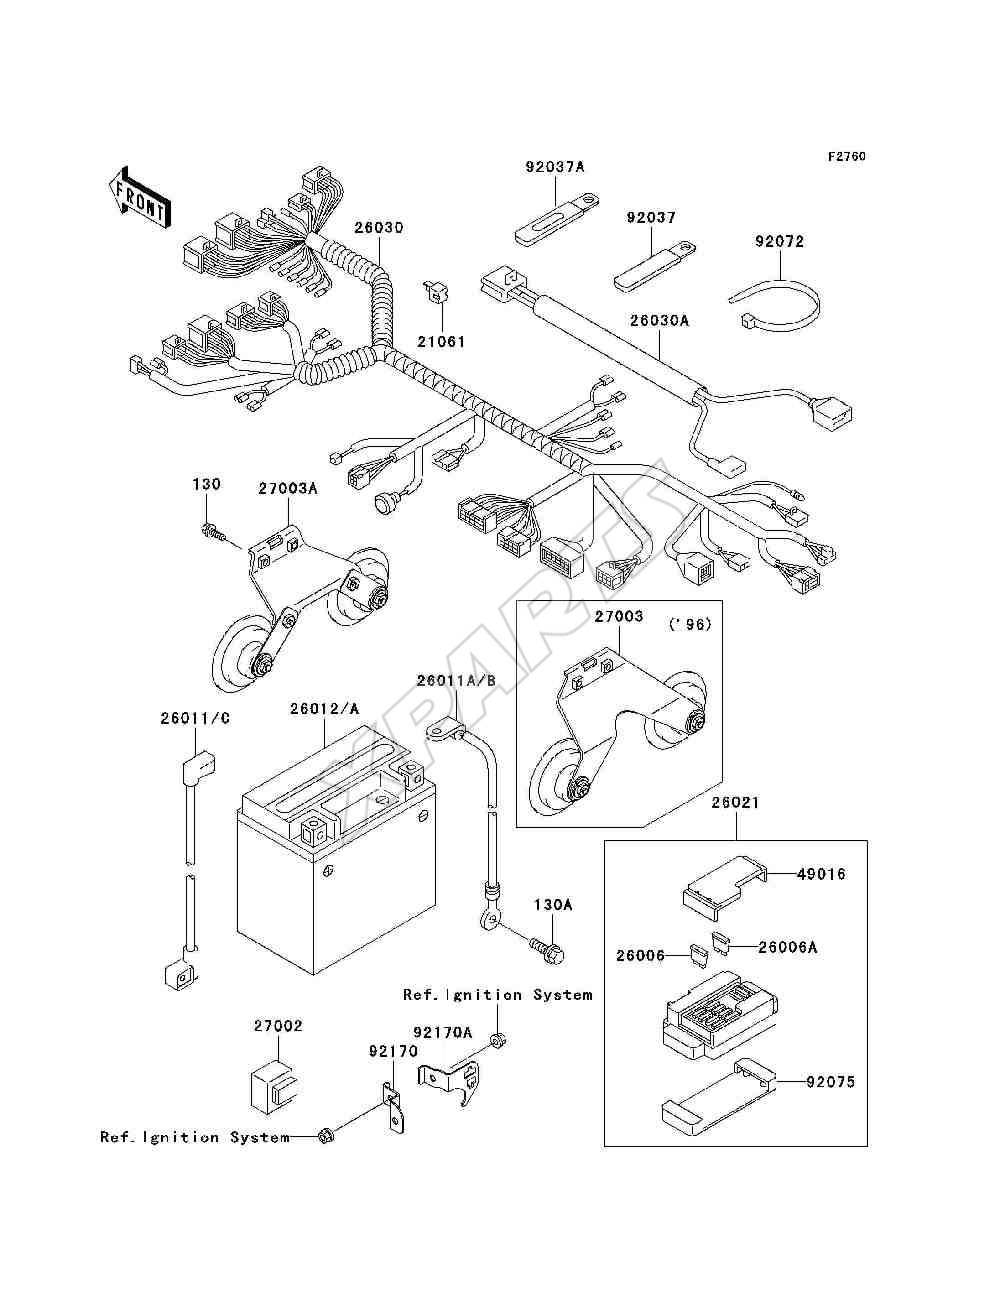 1997 vulcan wiring diagram wiring library Kawasaki Vulcan 1600 Classic Forum chassis electrical equipment